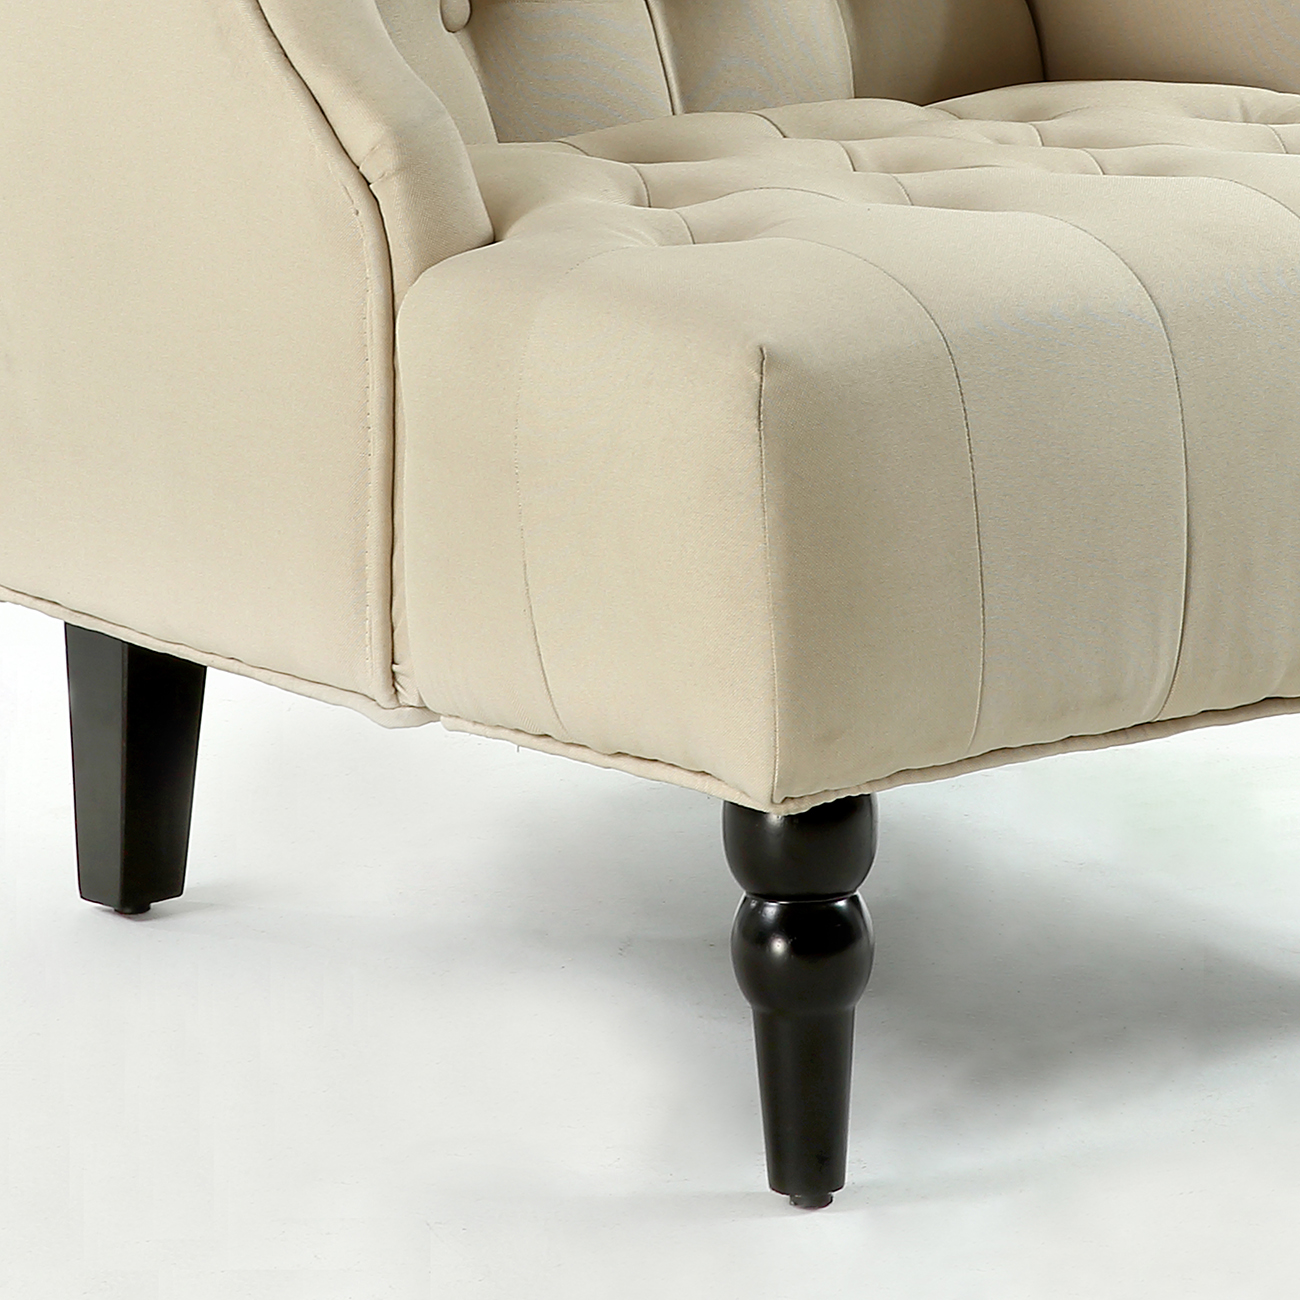 Shop Gymax Wingback Tufted Accent Chair Fabric Nailhead: NEW Modern Wingback Accent Chair Diamond-Tufted Linen